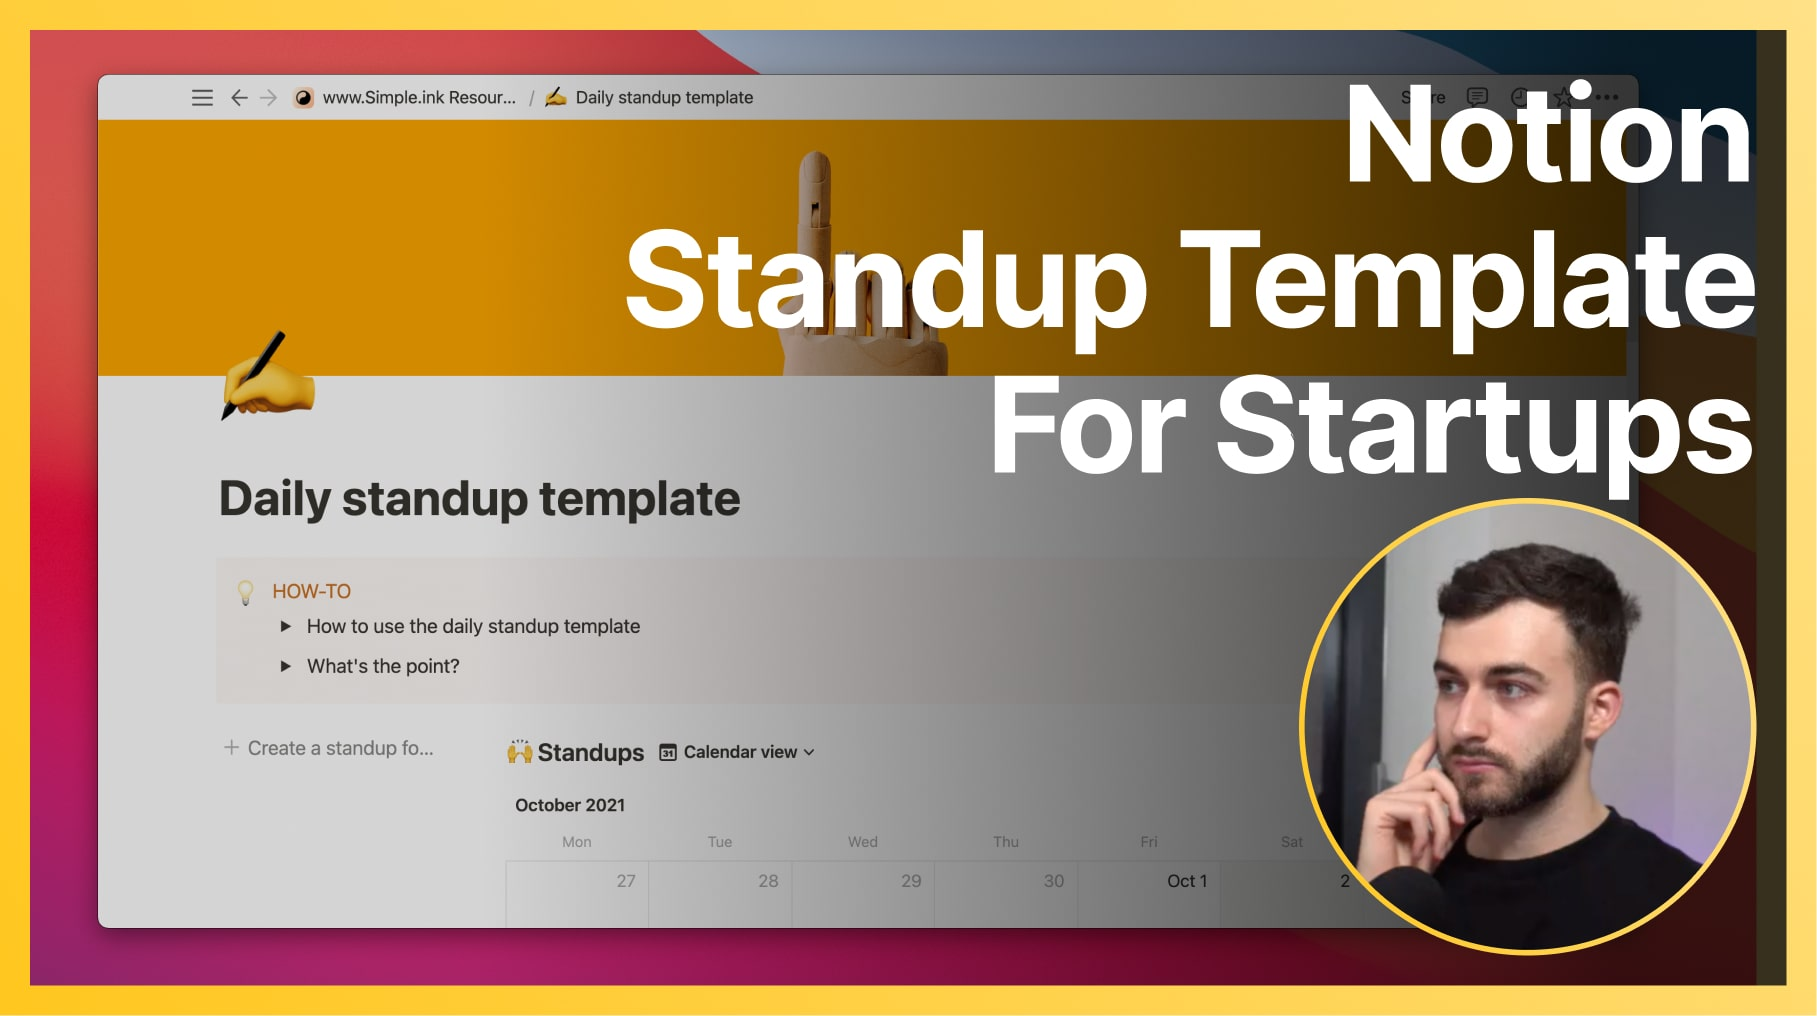 How to use the Notion Standup Template for Startups